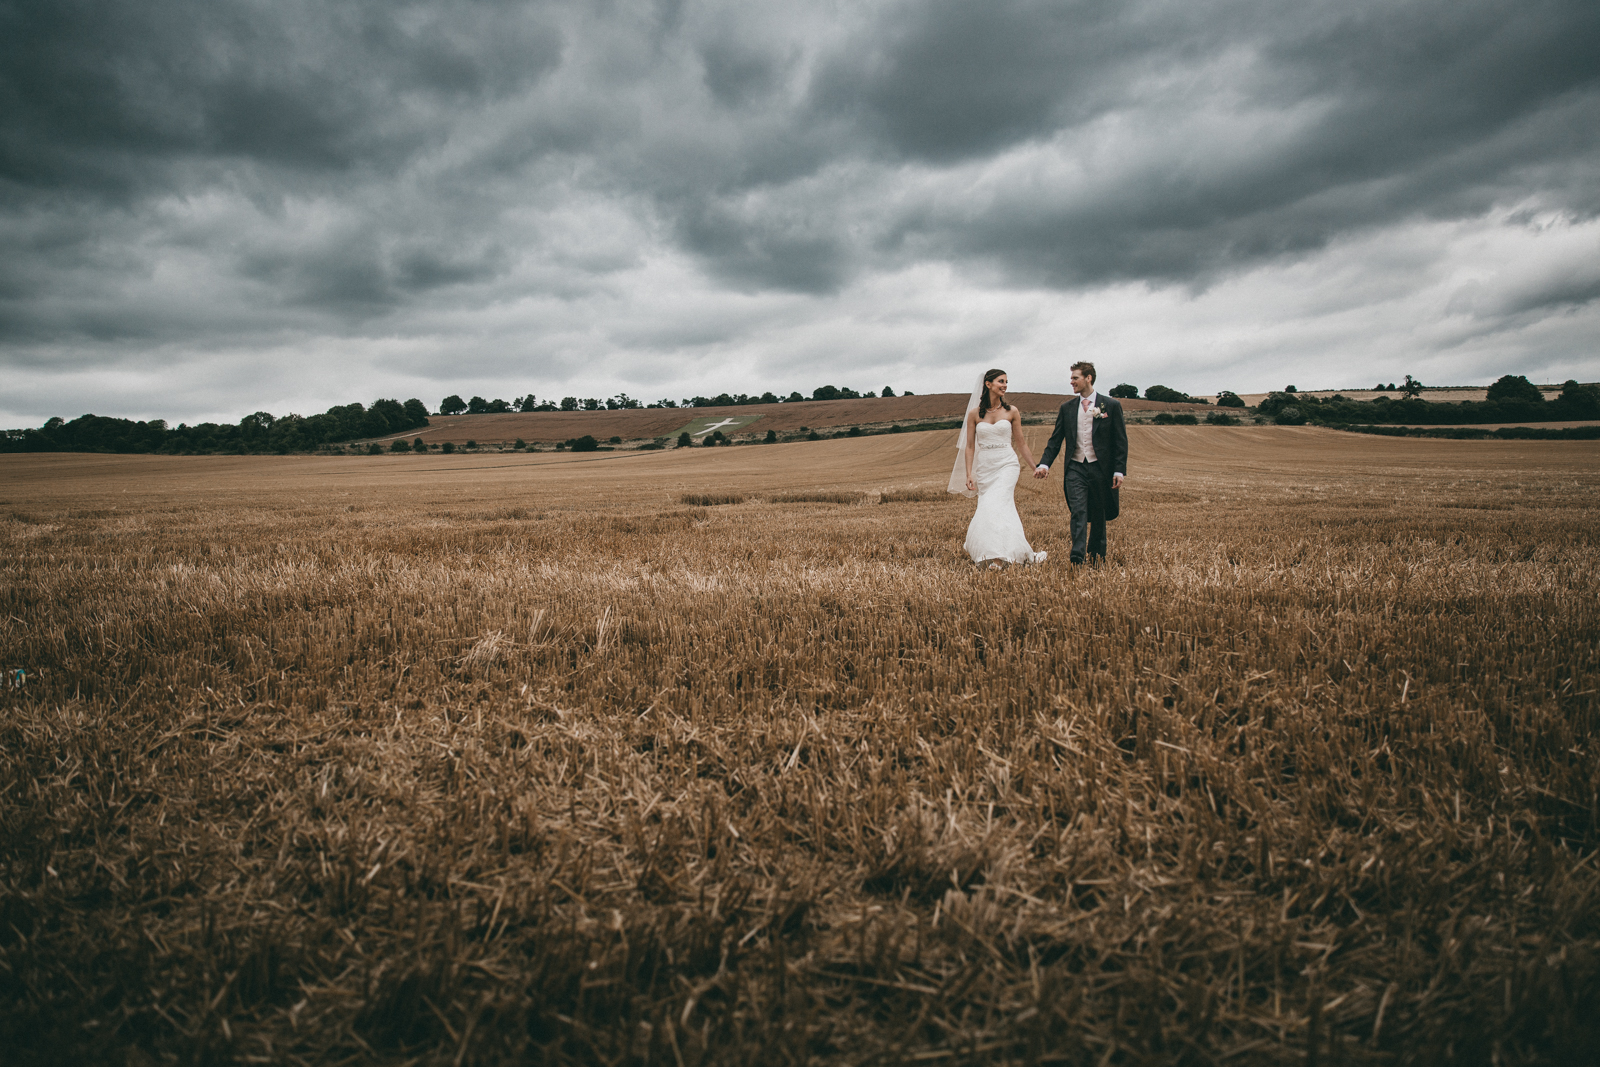 Chris Bradshaw Wedding Photography - Simon & Amanda Wedding Photos-69